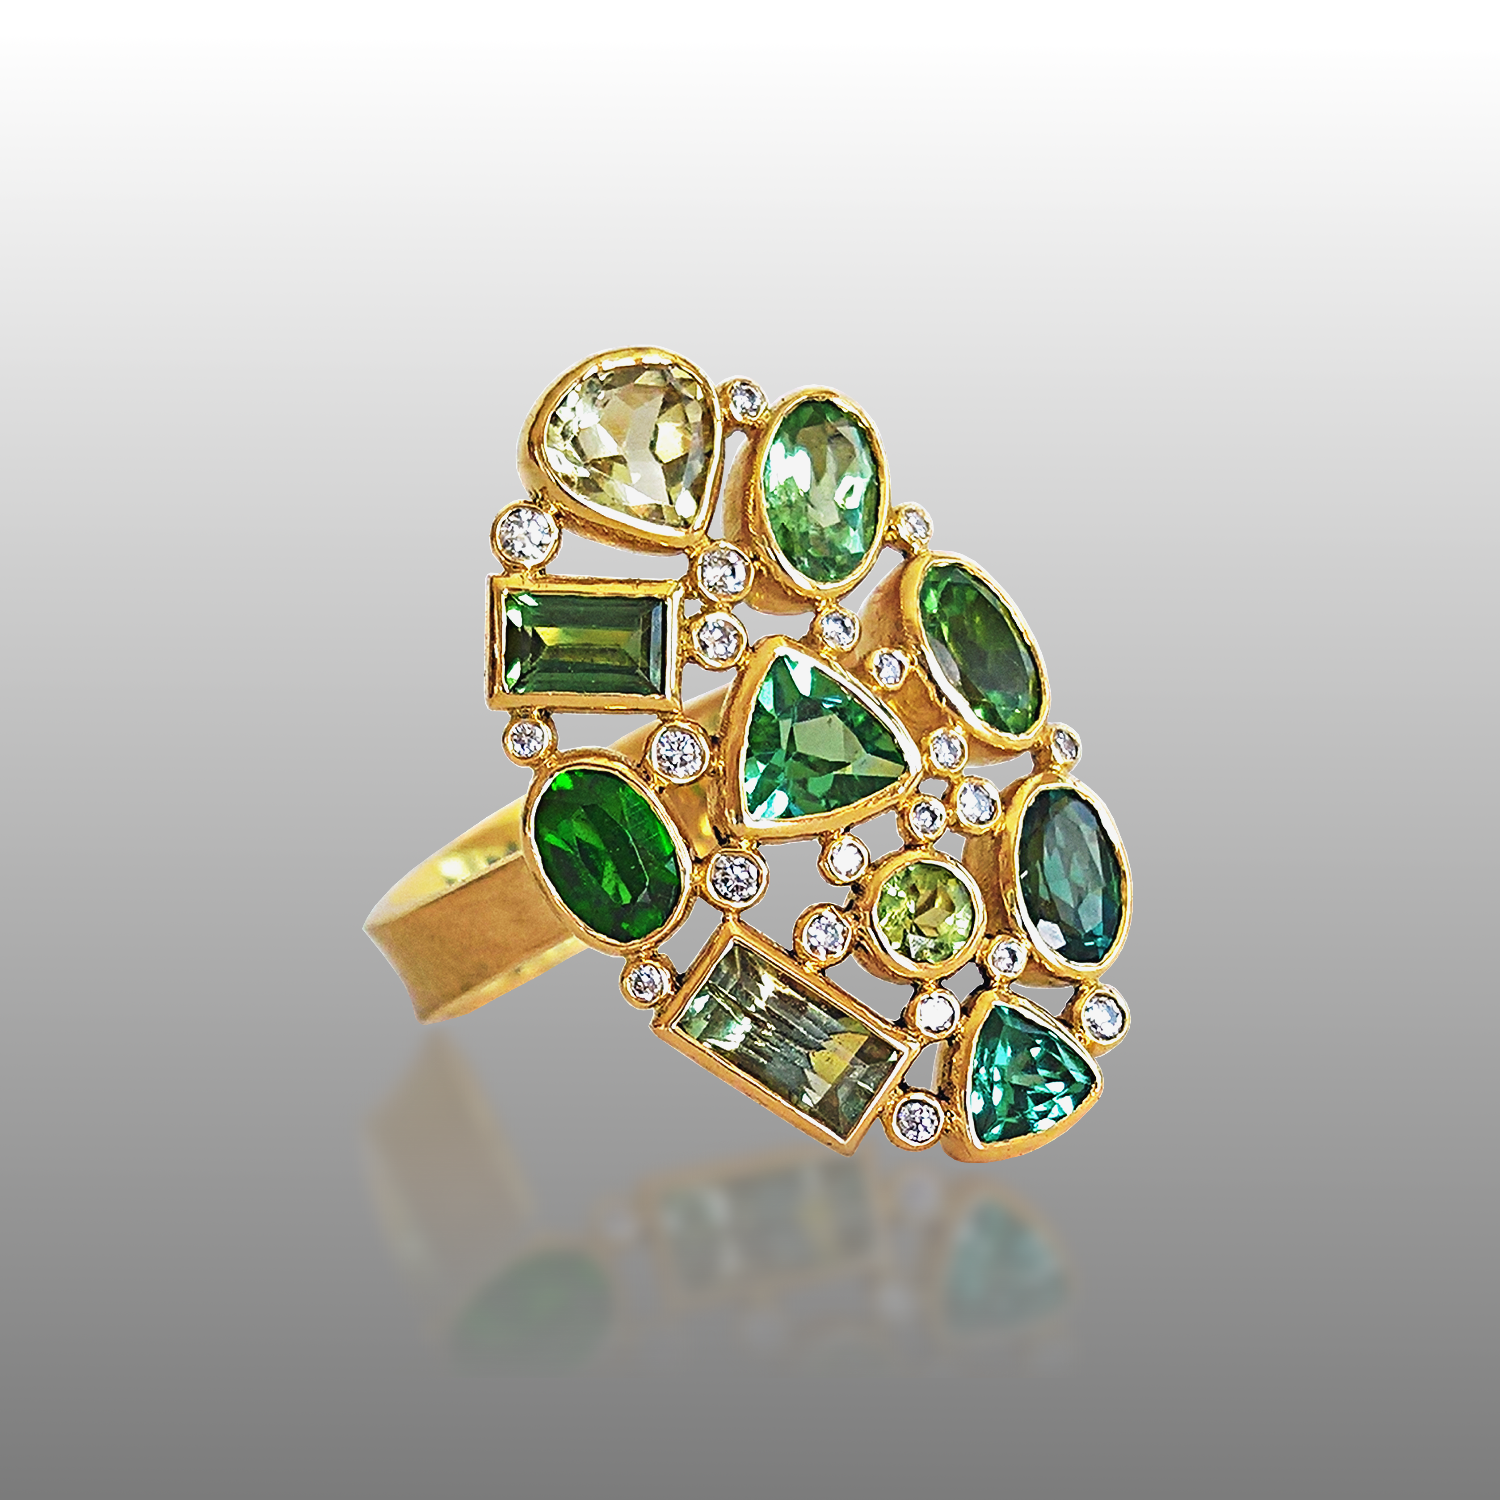 'Rainforest' Ring in 18k gold with Green Tourmalines and Diamonds from the KALEIDOSCOPE Collection by Pratima Design Fine Art Jewelry Maui